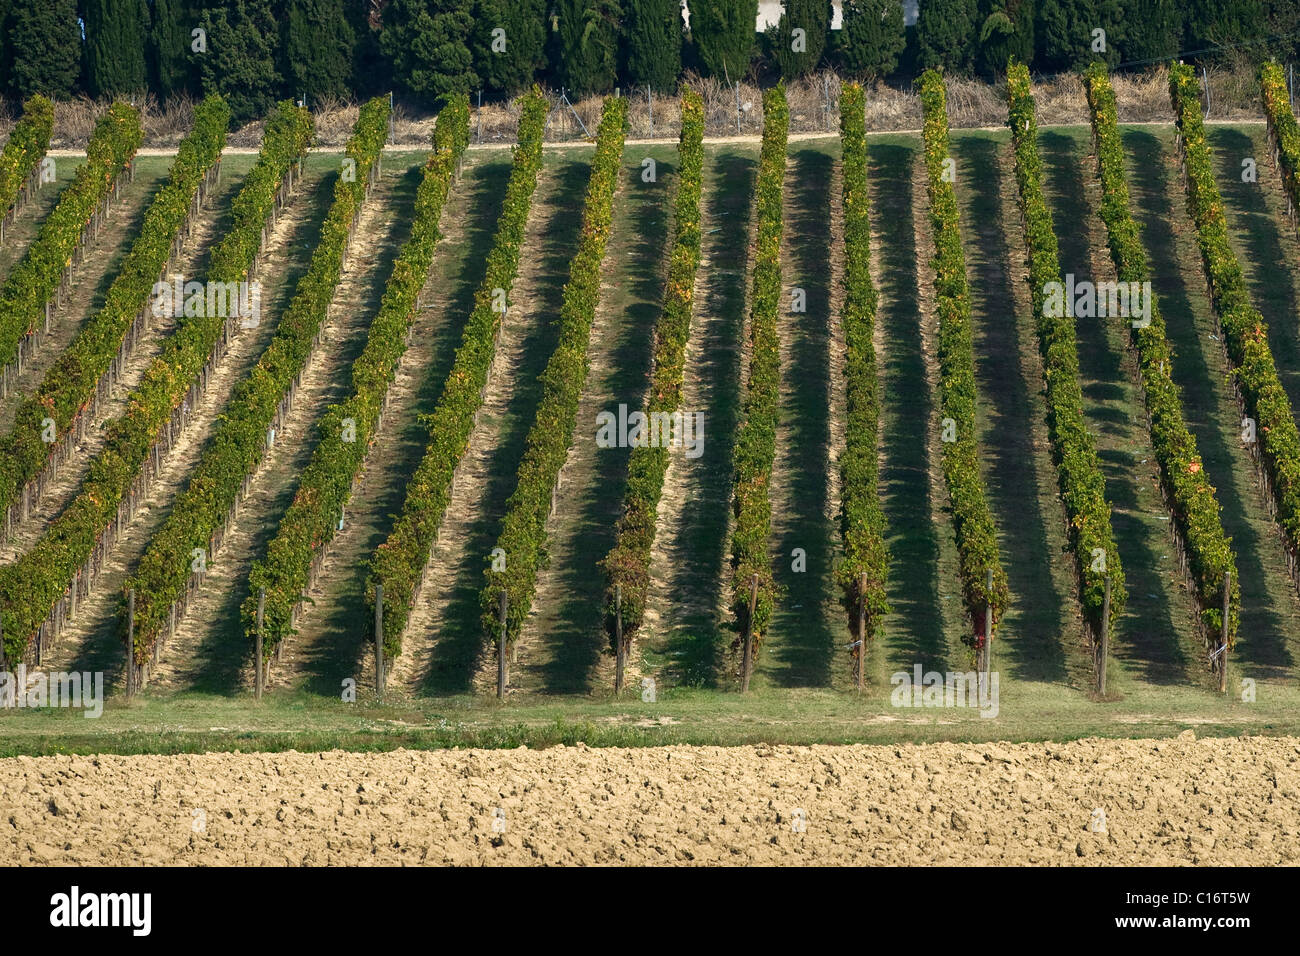 Vineyard, Marche, Italy, Europe - Stock Image